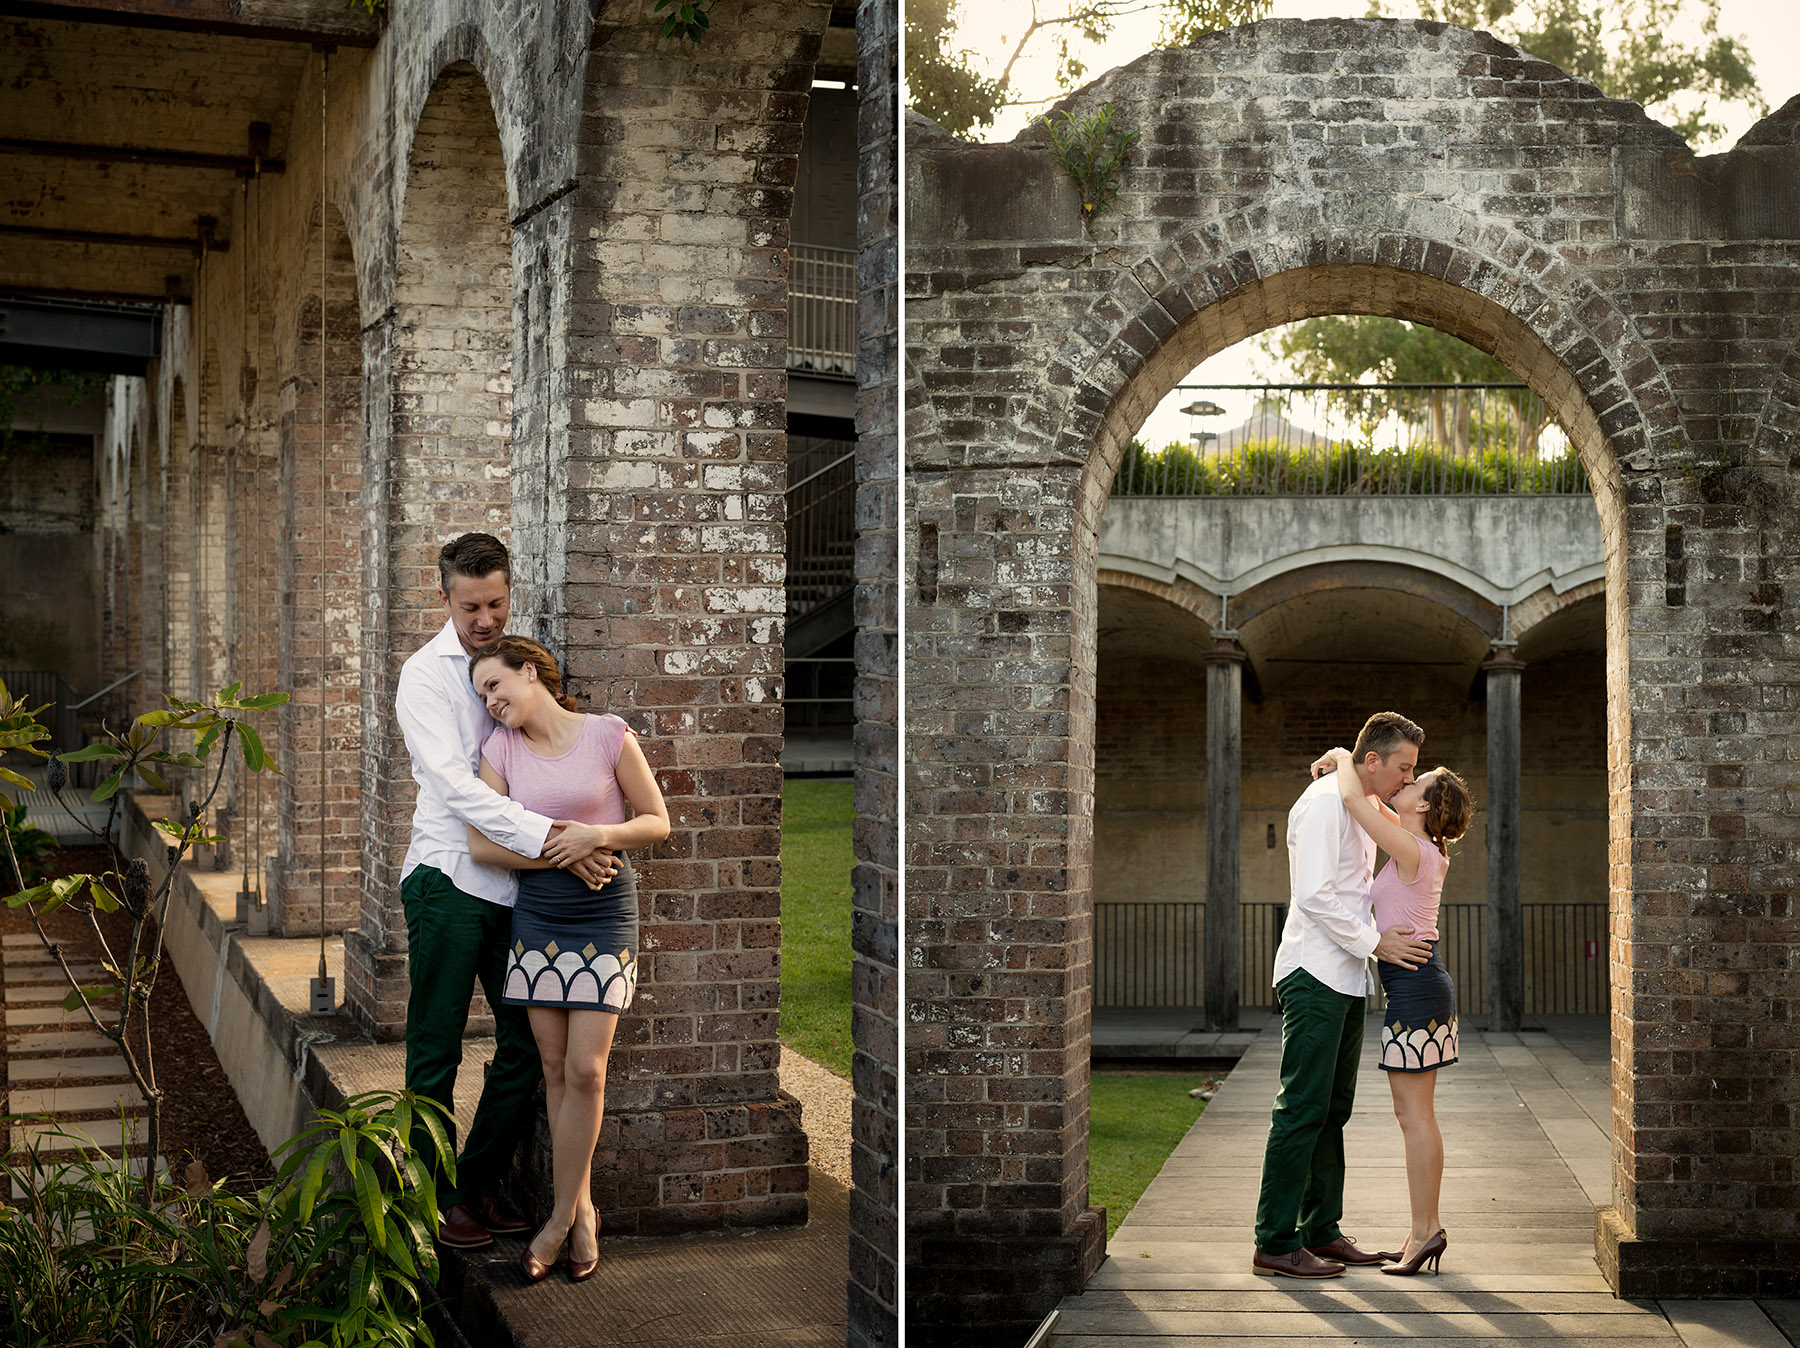 couple, portrait, photography, Sydney, Arianwen Parkes-Lockwood, Marcello Fabrizi